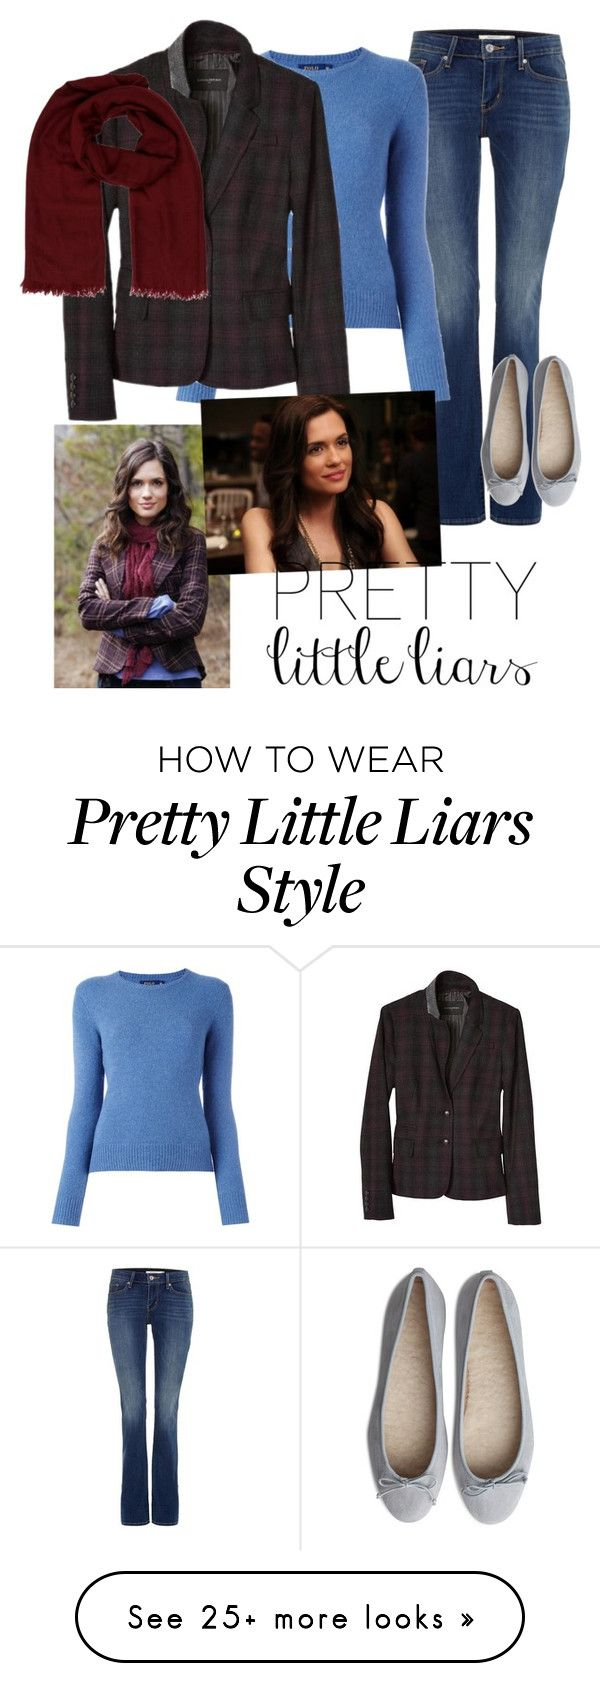 """MELISSA HASTINGS - PLL SERIES"" by ecarri on Polyvore featuring Levi's, Polo Ralph Lauren, Banana Republic, Hermès and Melissa"